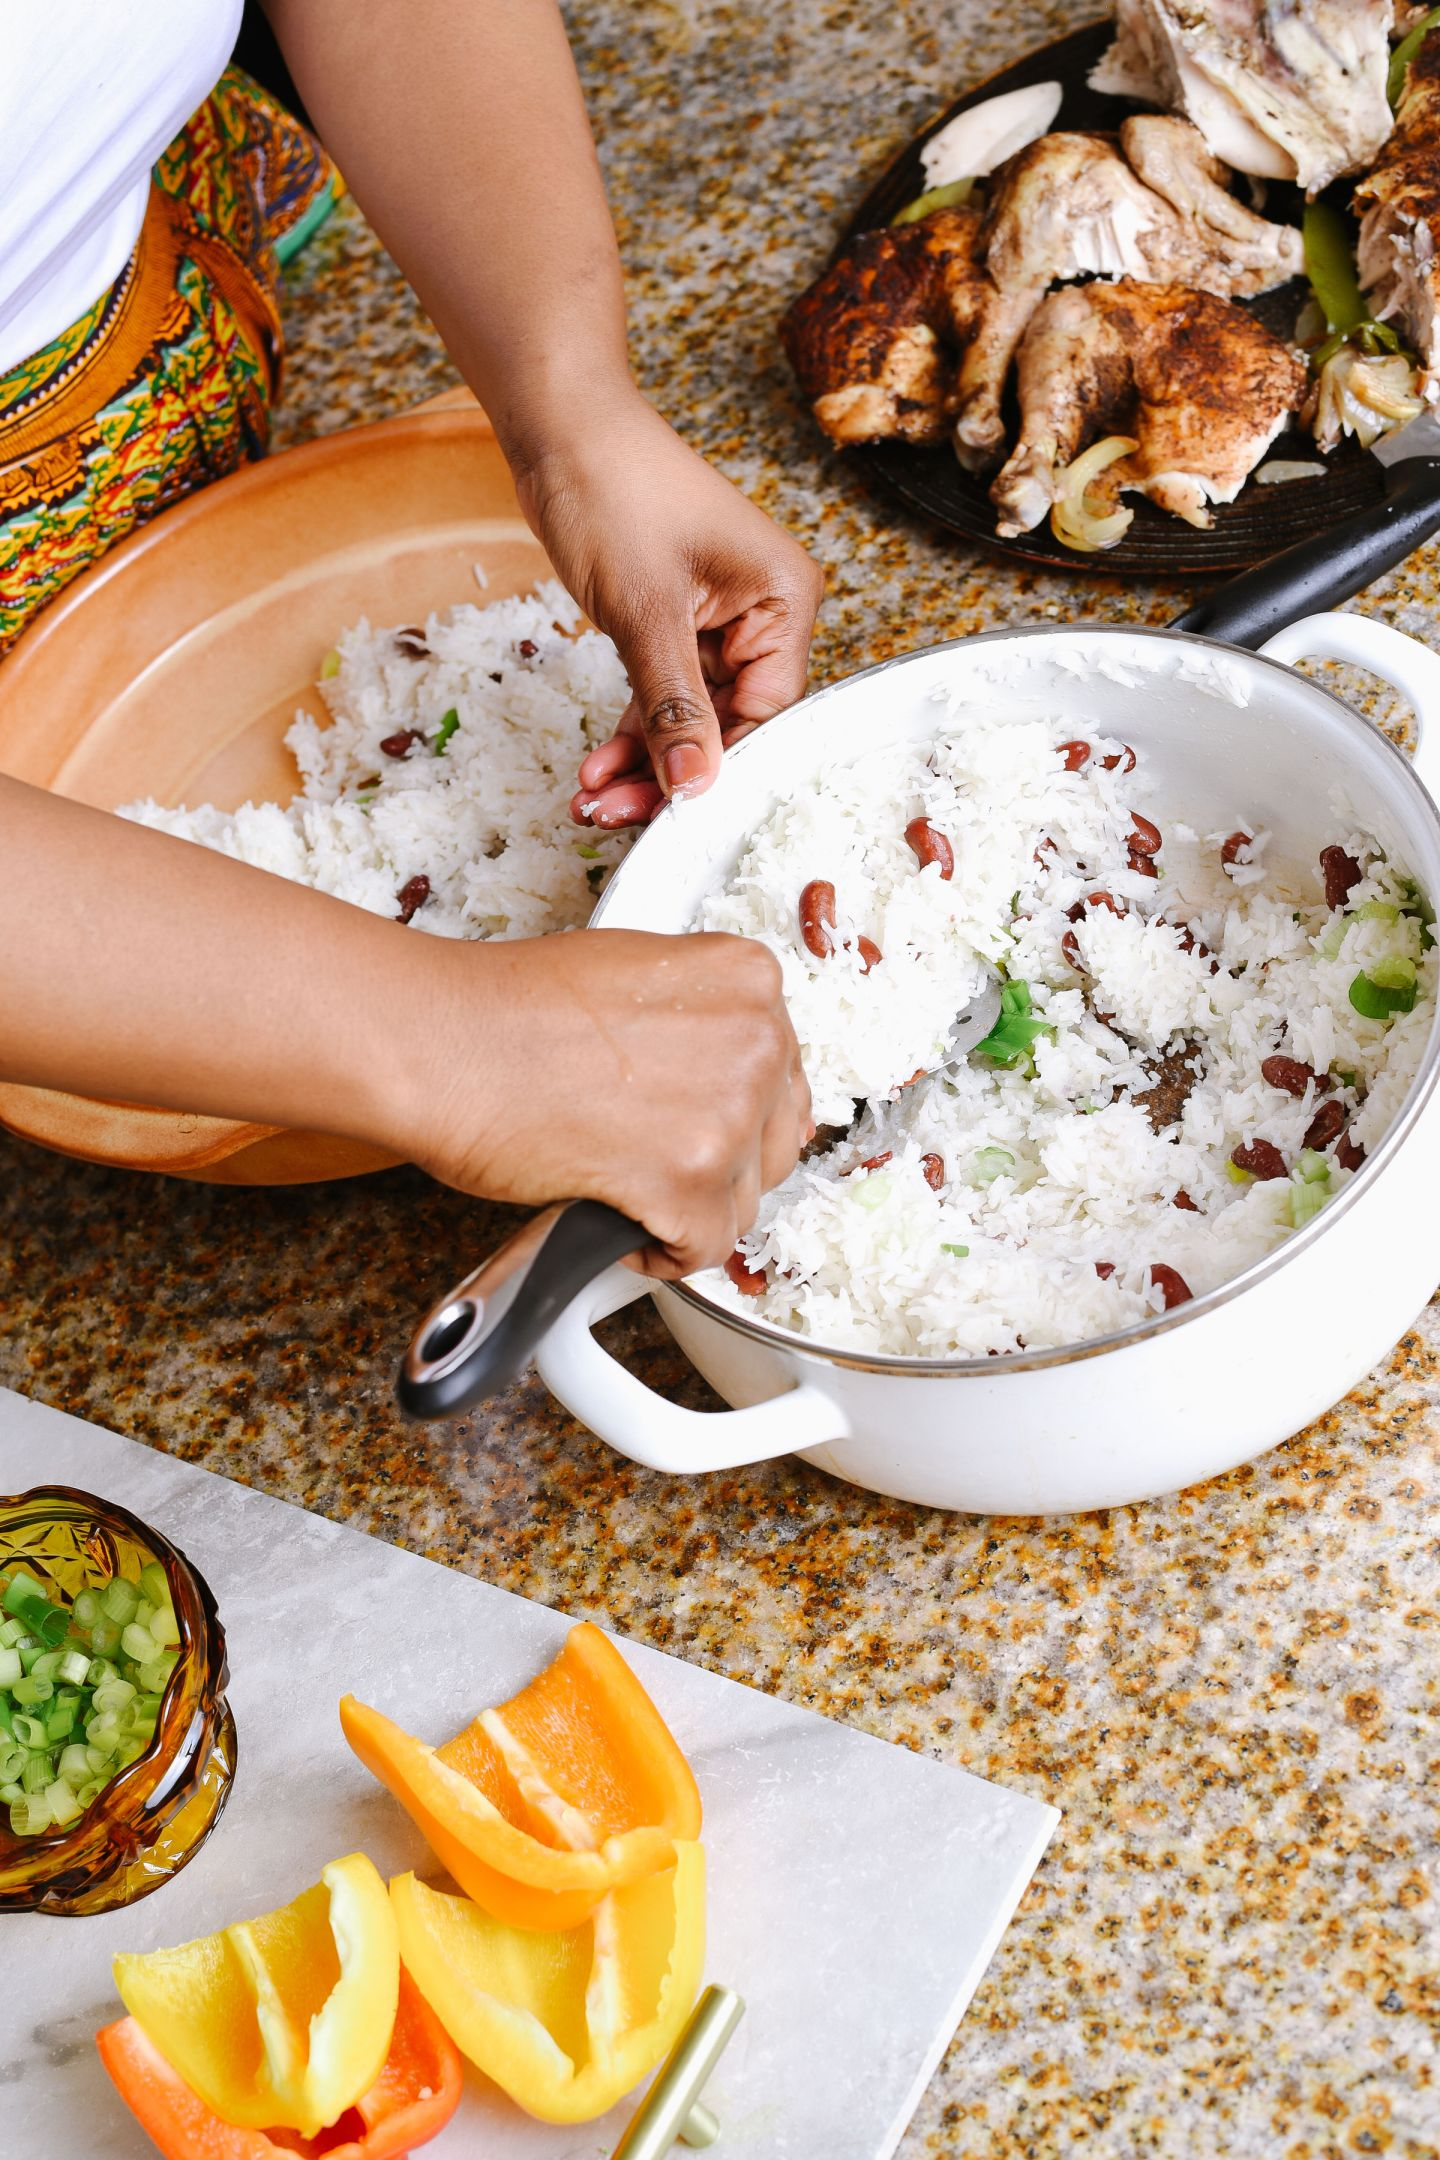 Chakayla31of1-1440x2160 North Carolina Chef Gives 3 Tips for Making Cooking at Home Easier